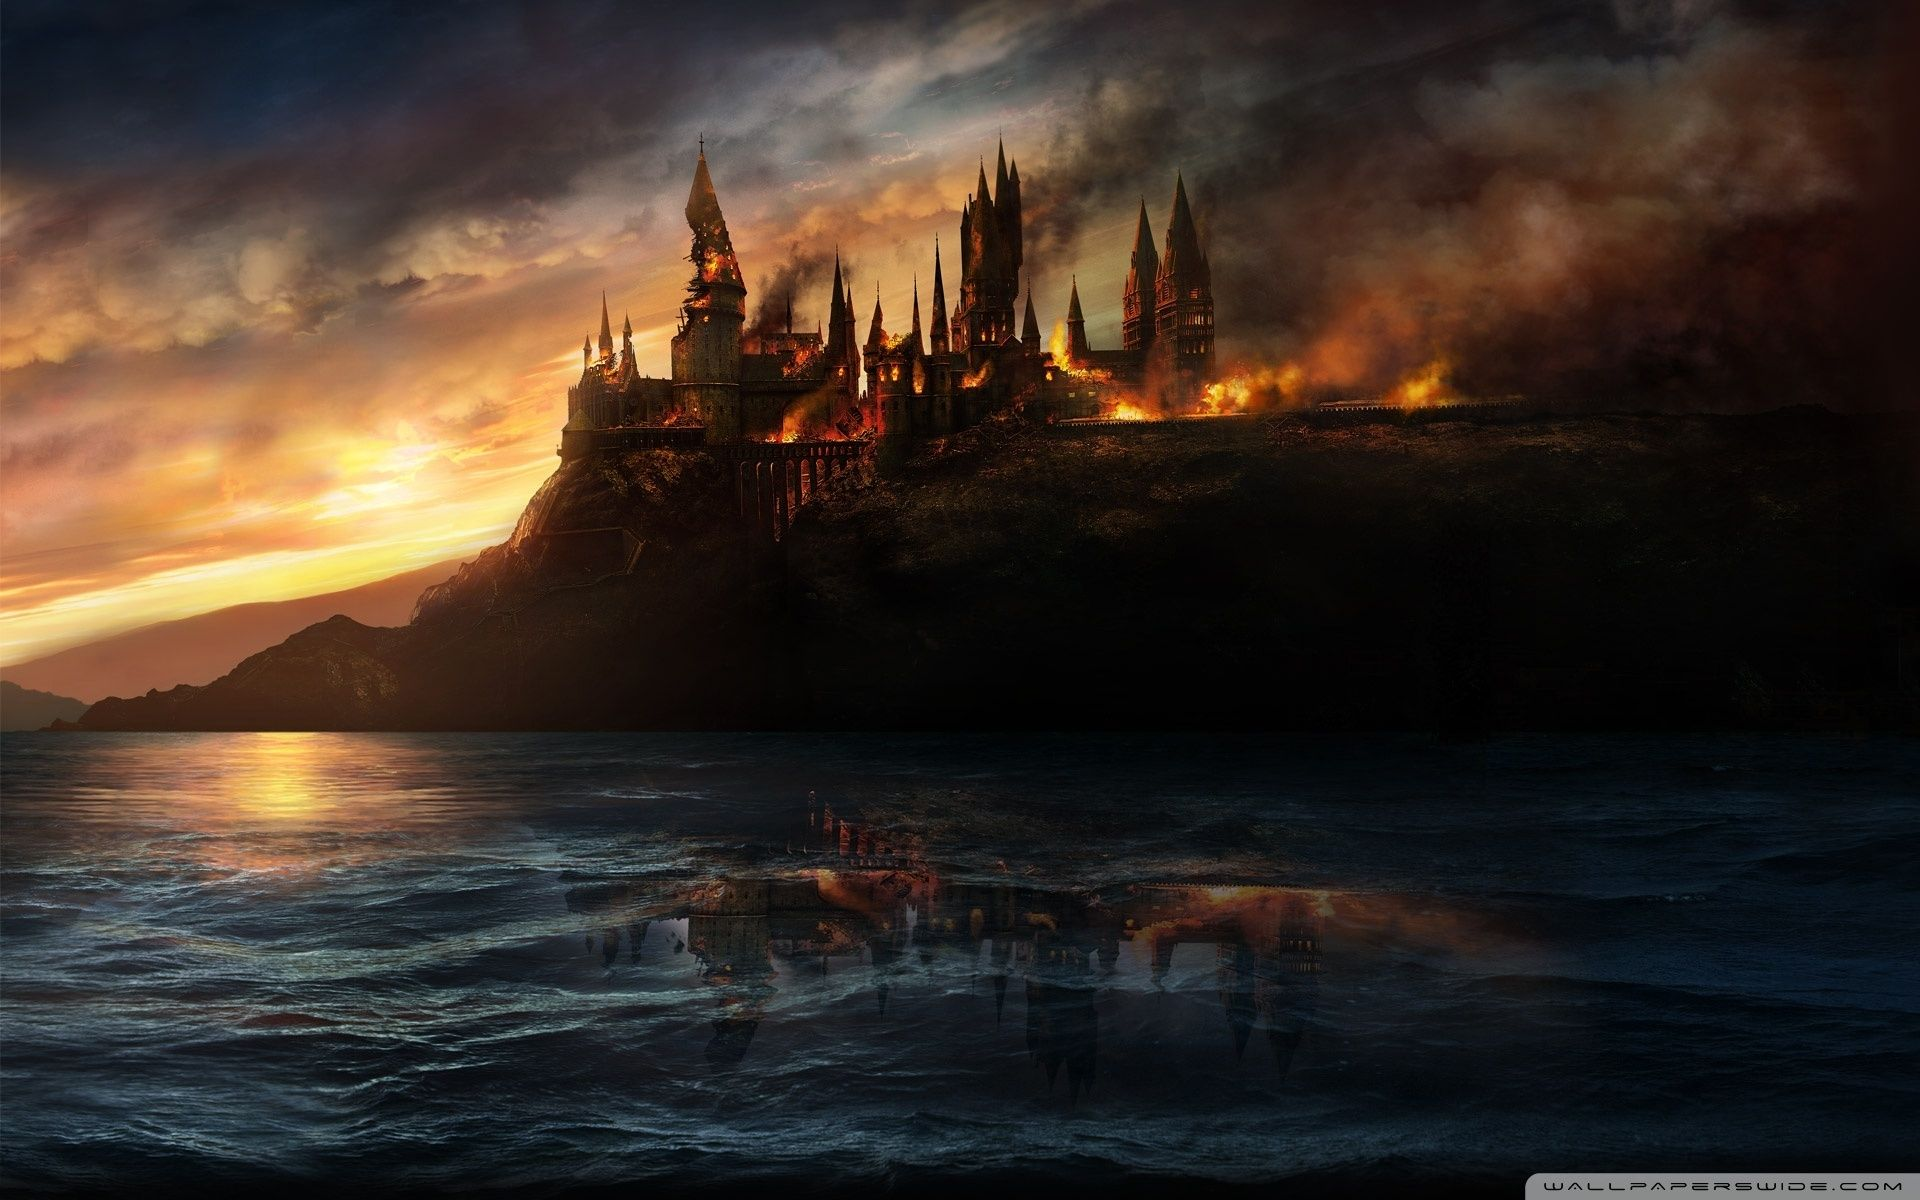 10 Best Hogwarts Hd Wallpapers 1080p Full Hd 1080p For Pc Desktop Harry Potter Background Harry Potter Wallpaper Harry Potter Fan Theories